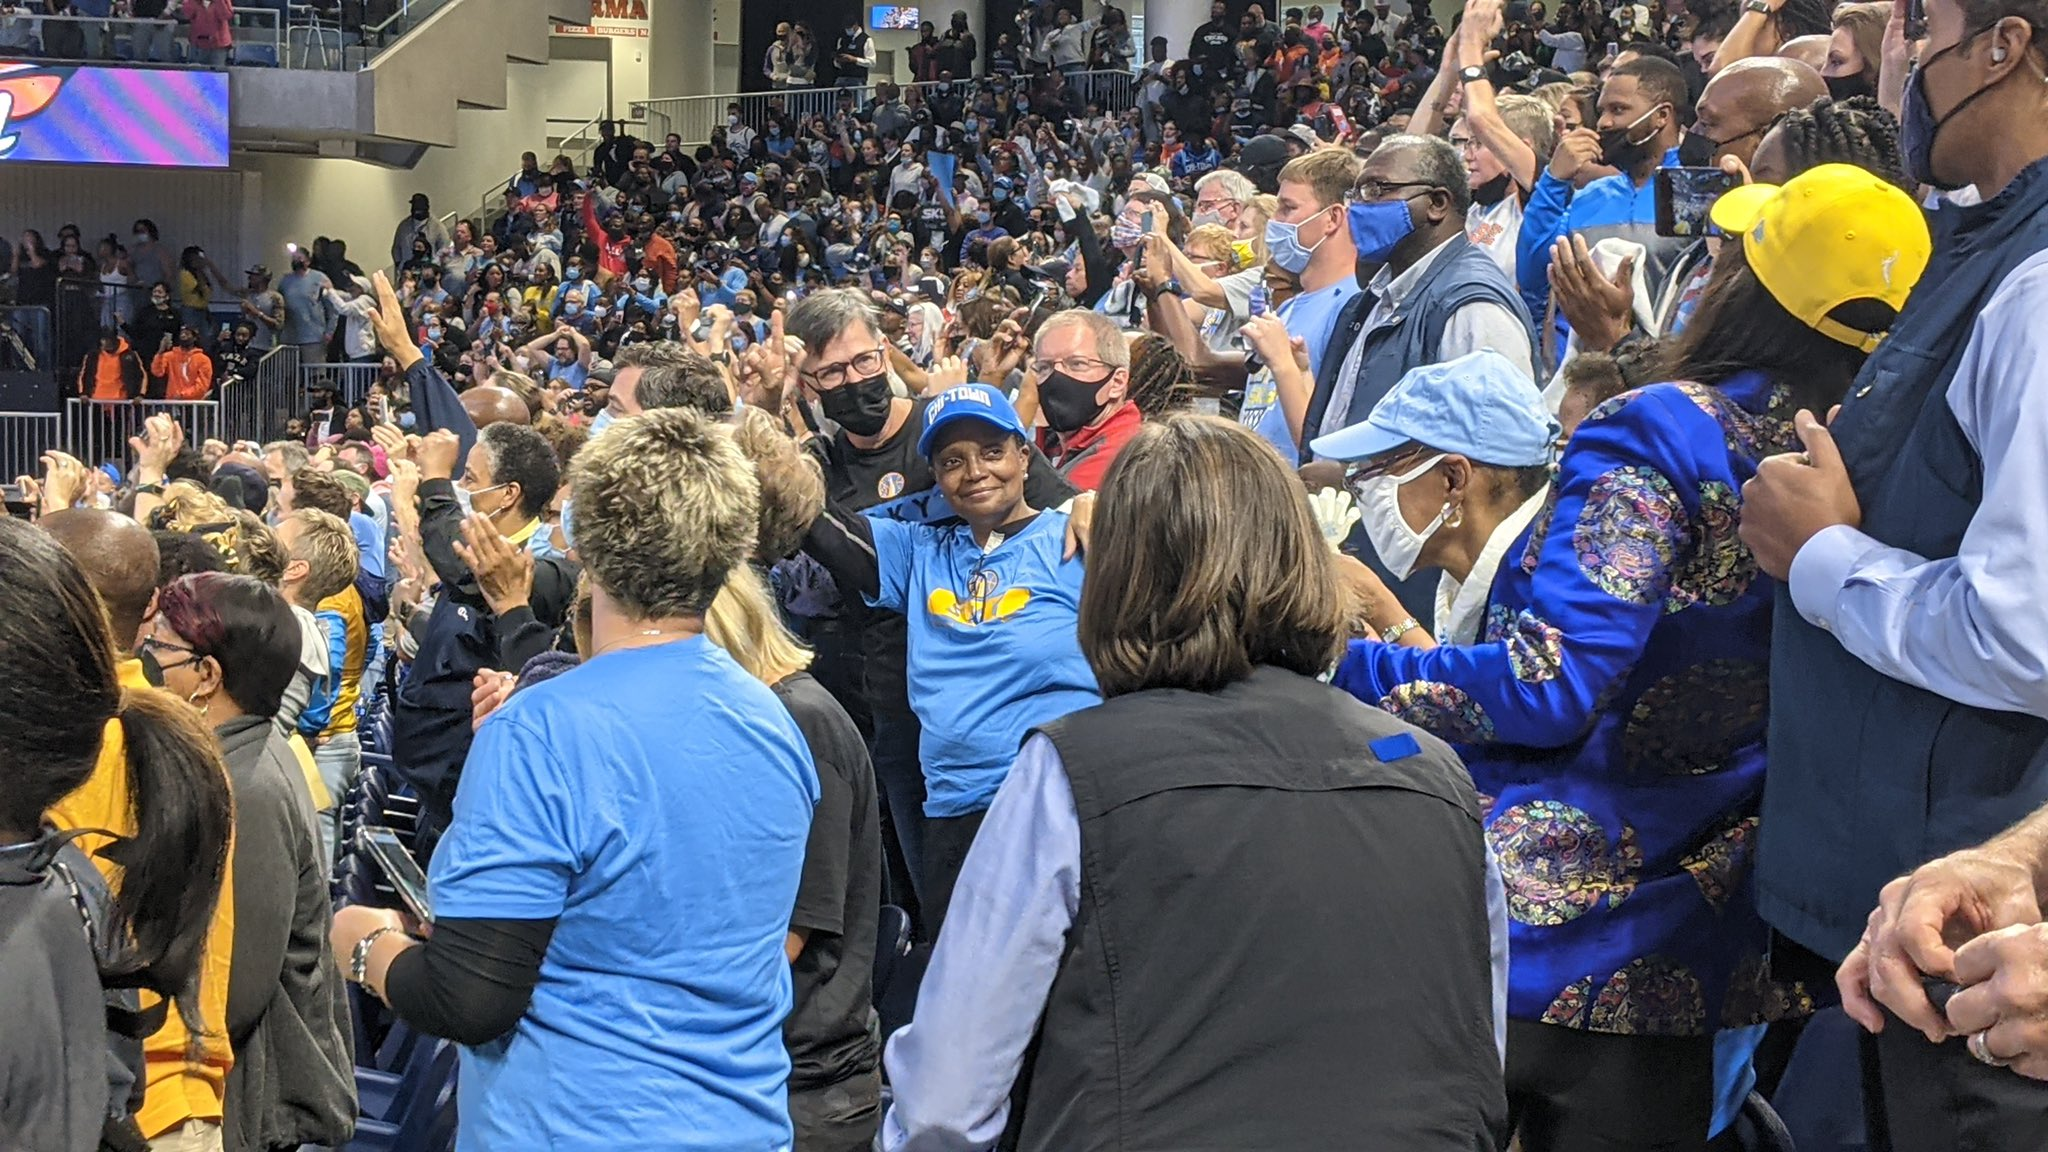 Mask mandate hypocrite Chicago Mayor Lori Lightfoot attended a basketball game where everyone except her was wearing a mask.